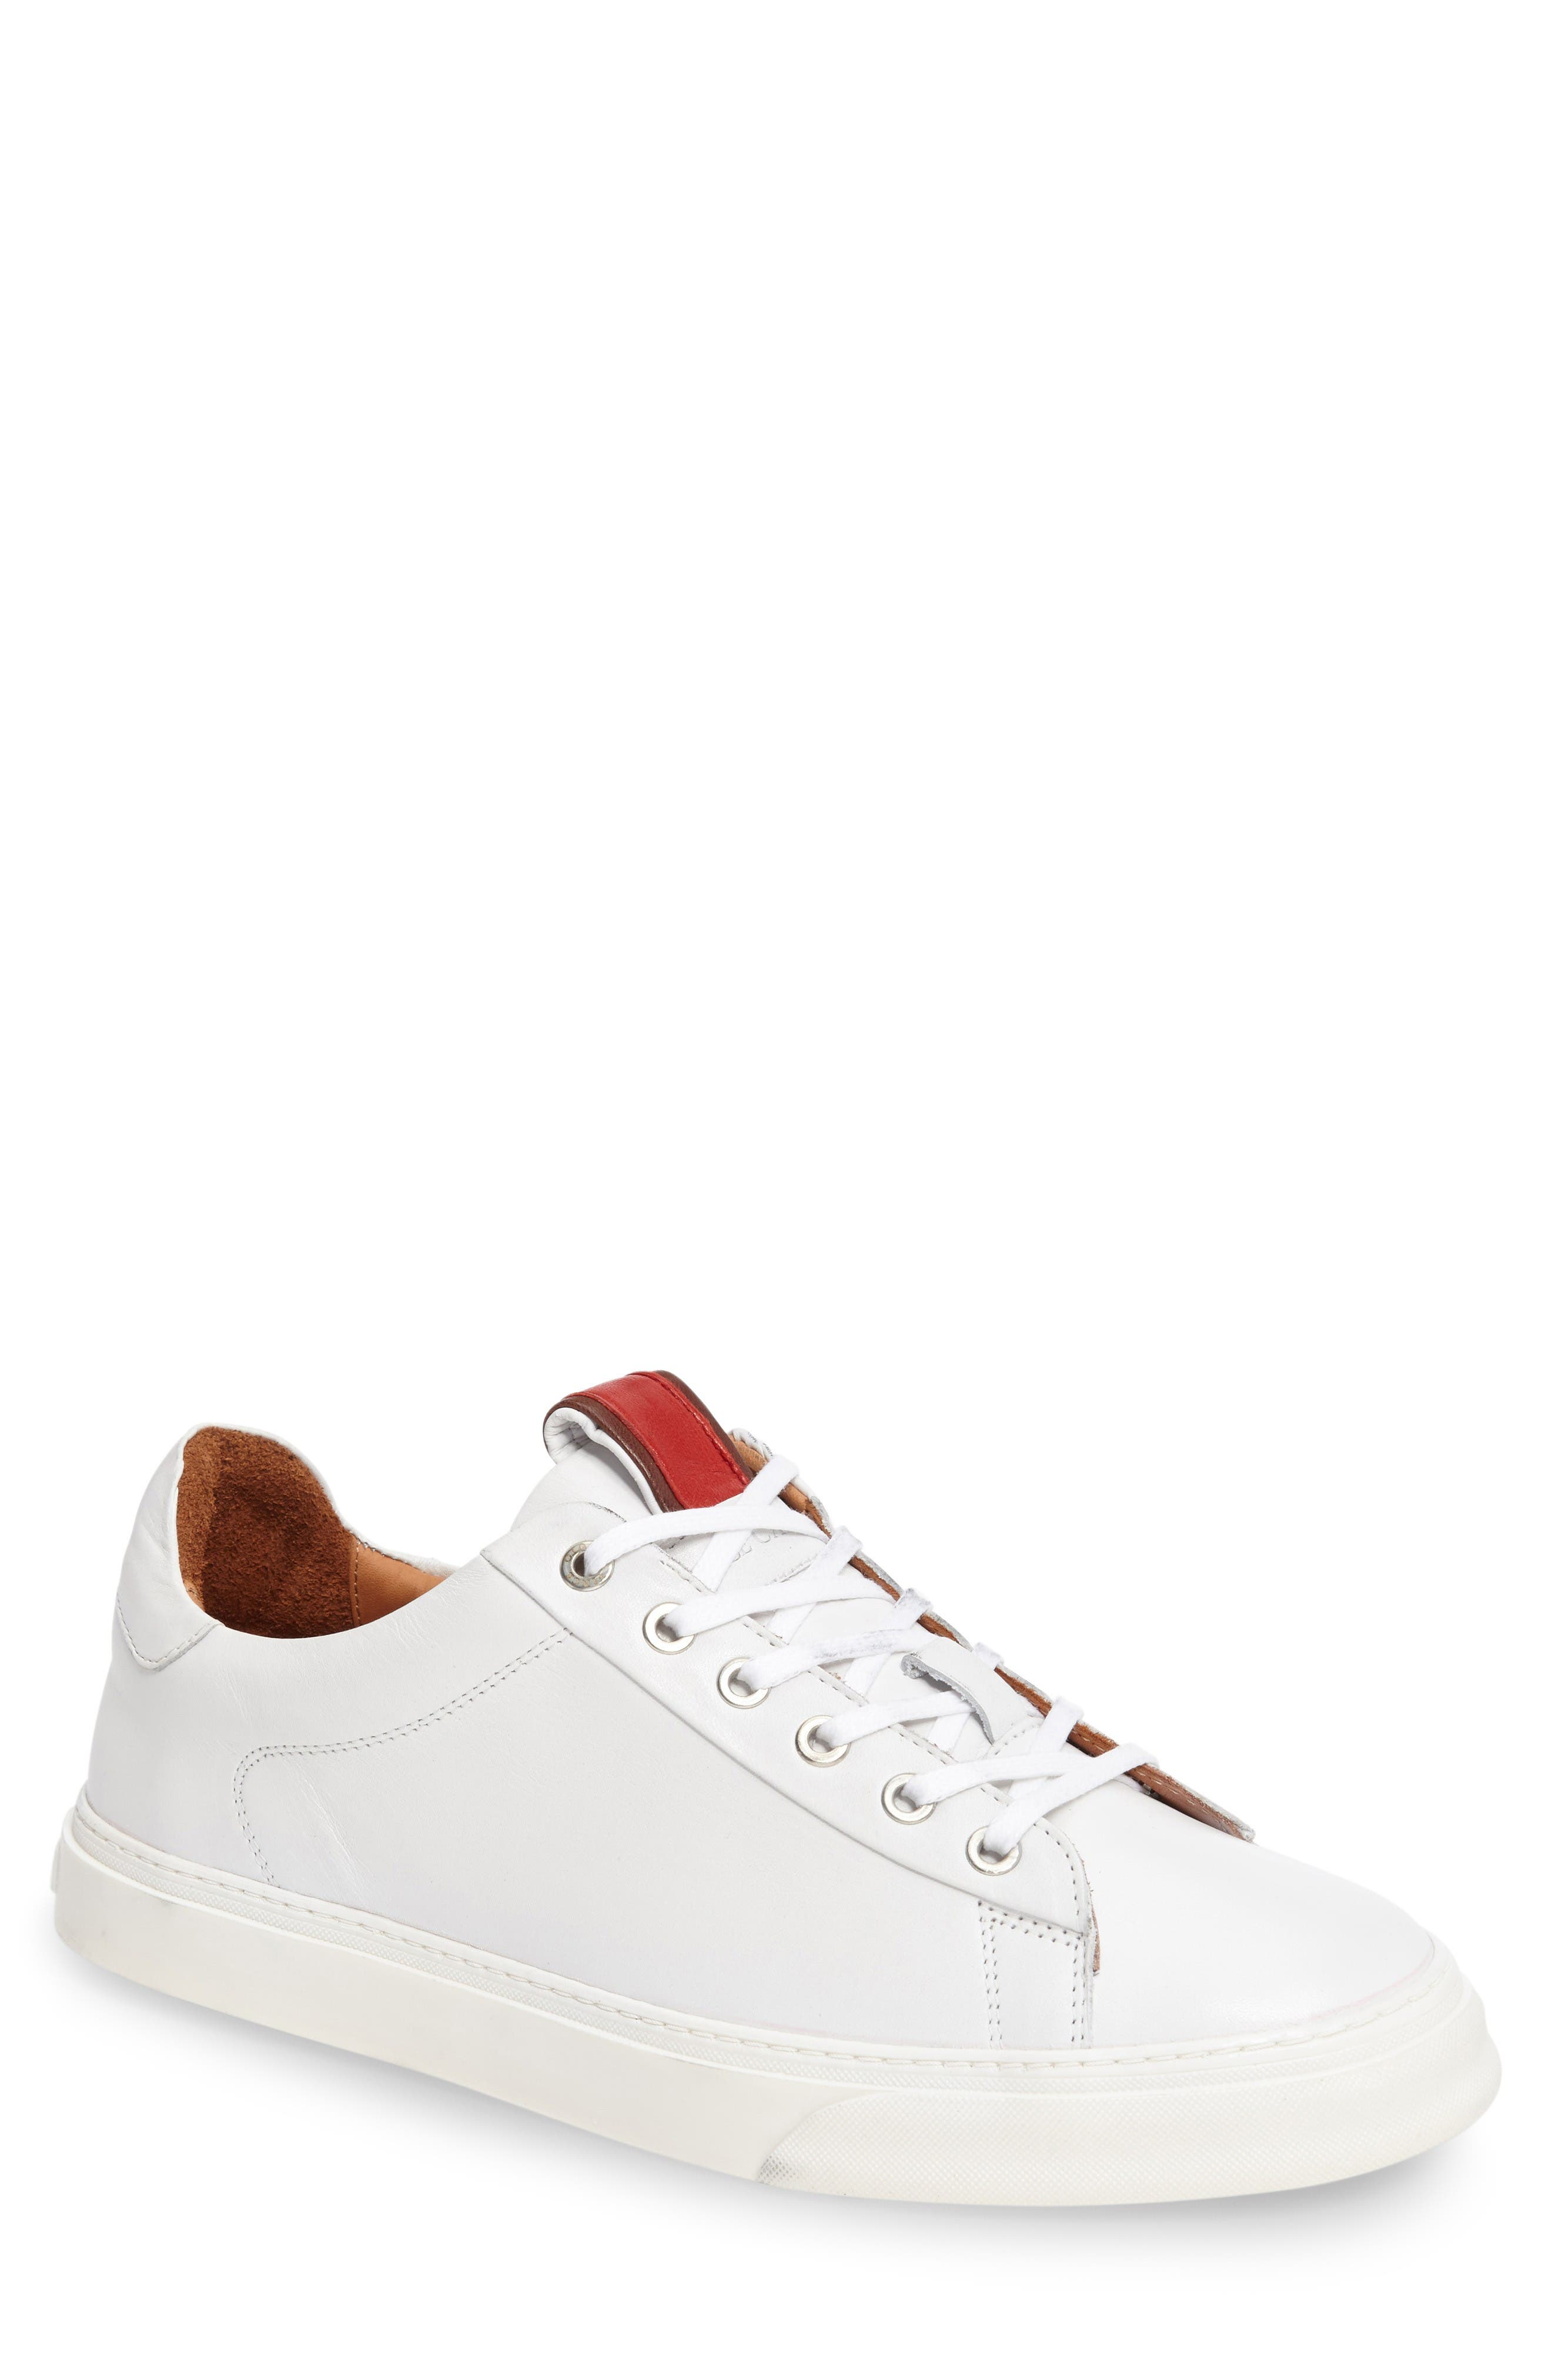 Quin Sneaker,                         Main,                         color, White Leather